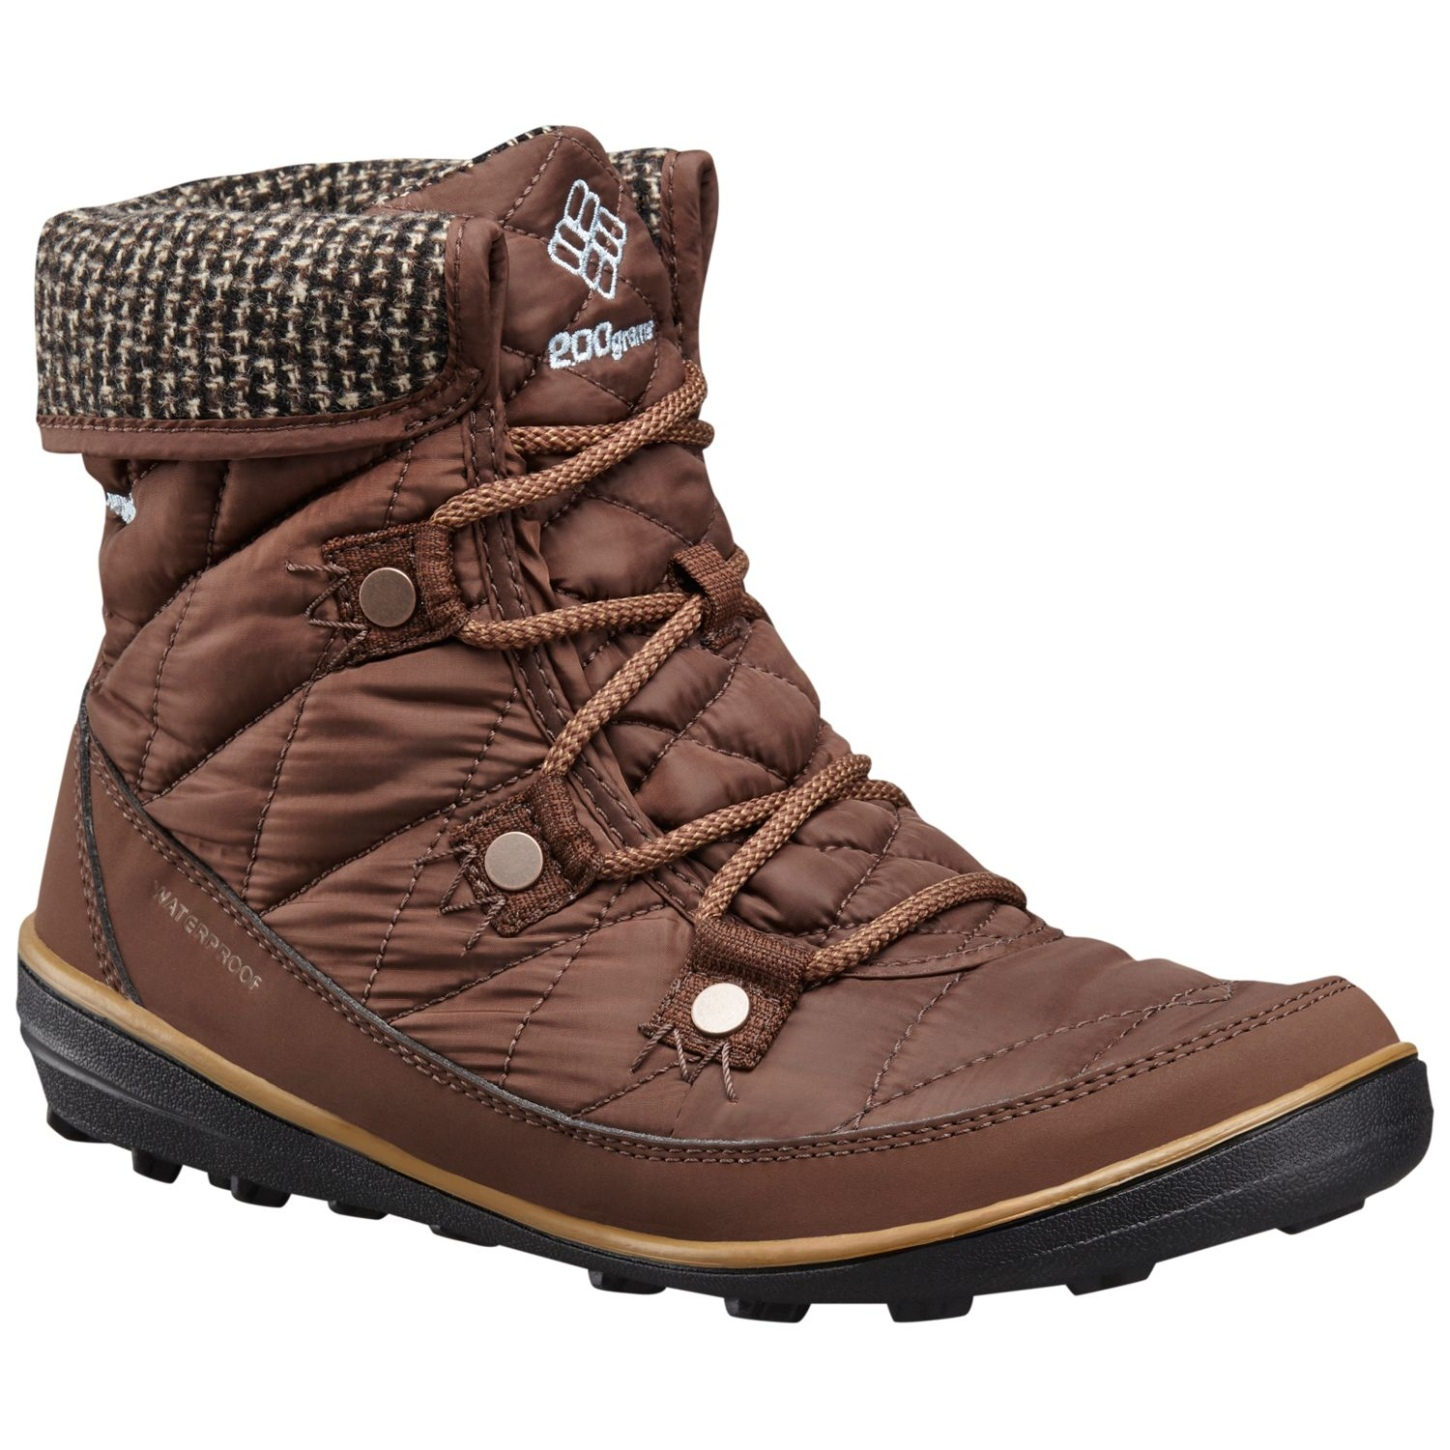 Columbia Women's Heavenly Shorty Omni-heat Knit Winter Boots Tobacco, Dark Mirage-30